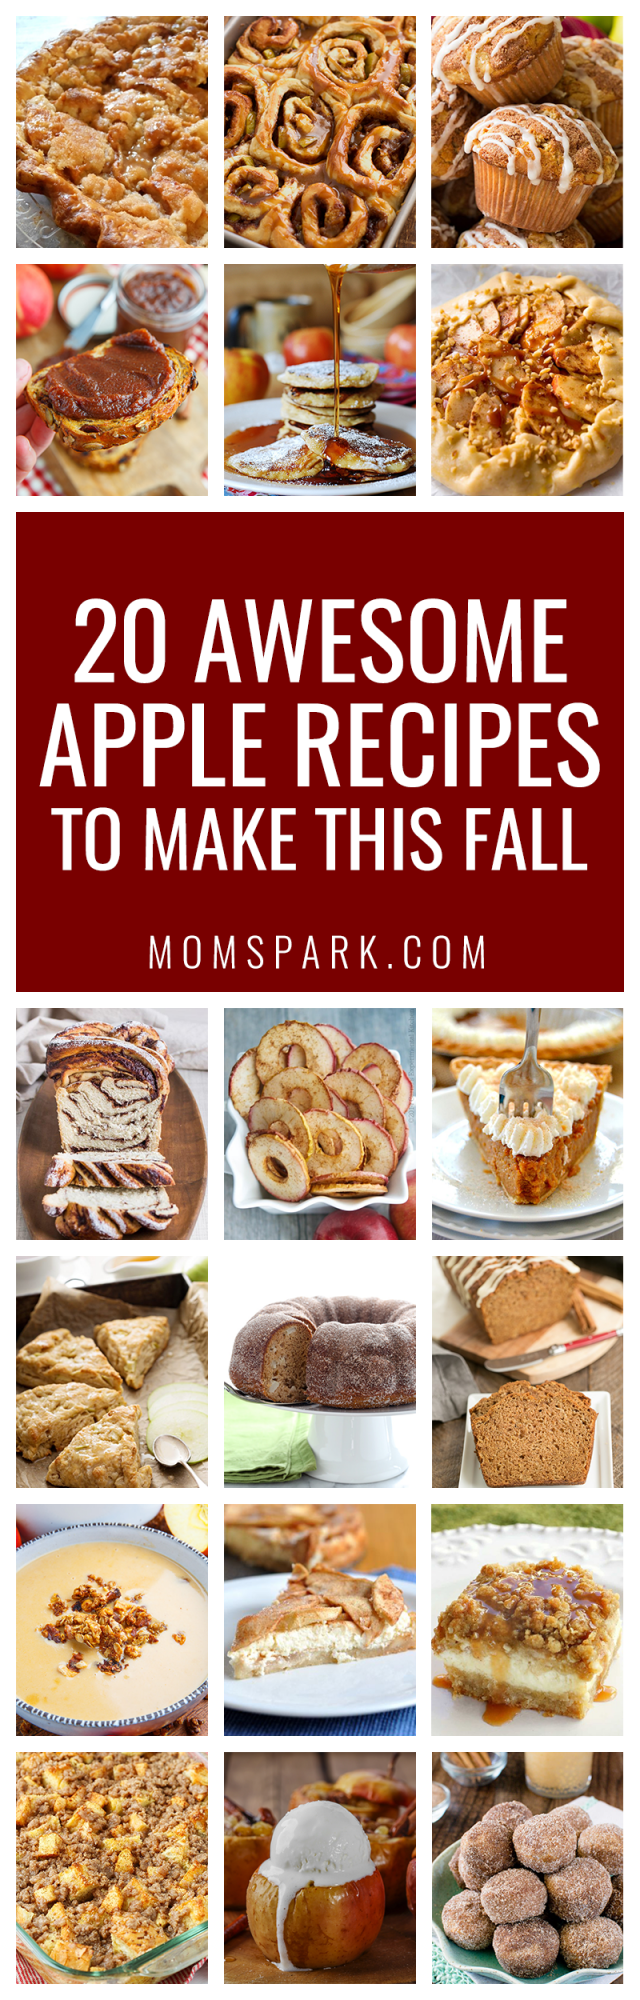 It's officially apple-picking season. Here are 20 awesome apple recipes to make this fall with all of your apples!